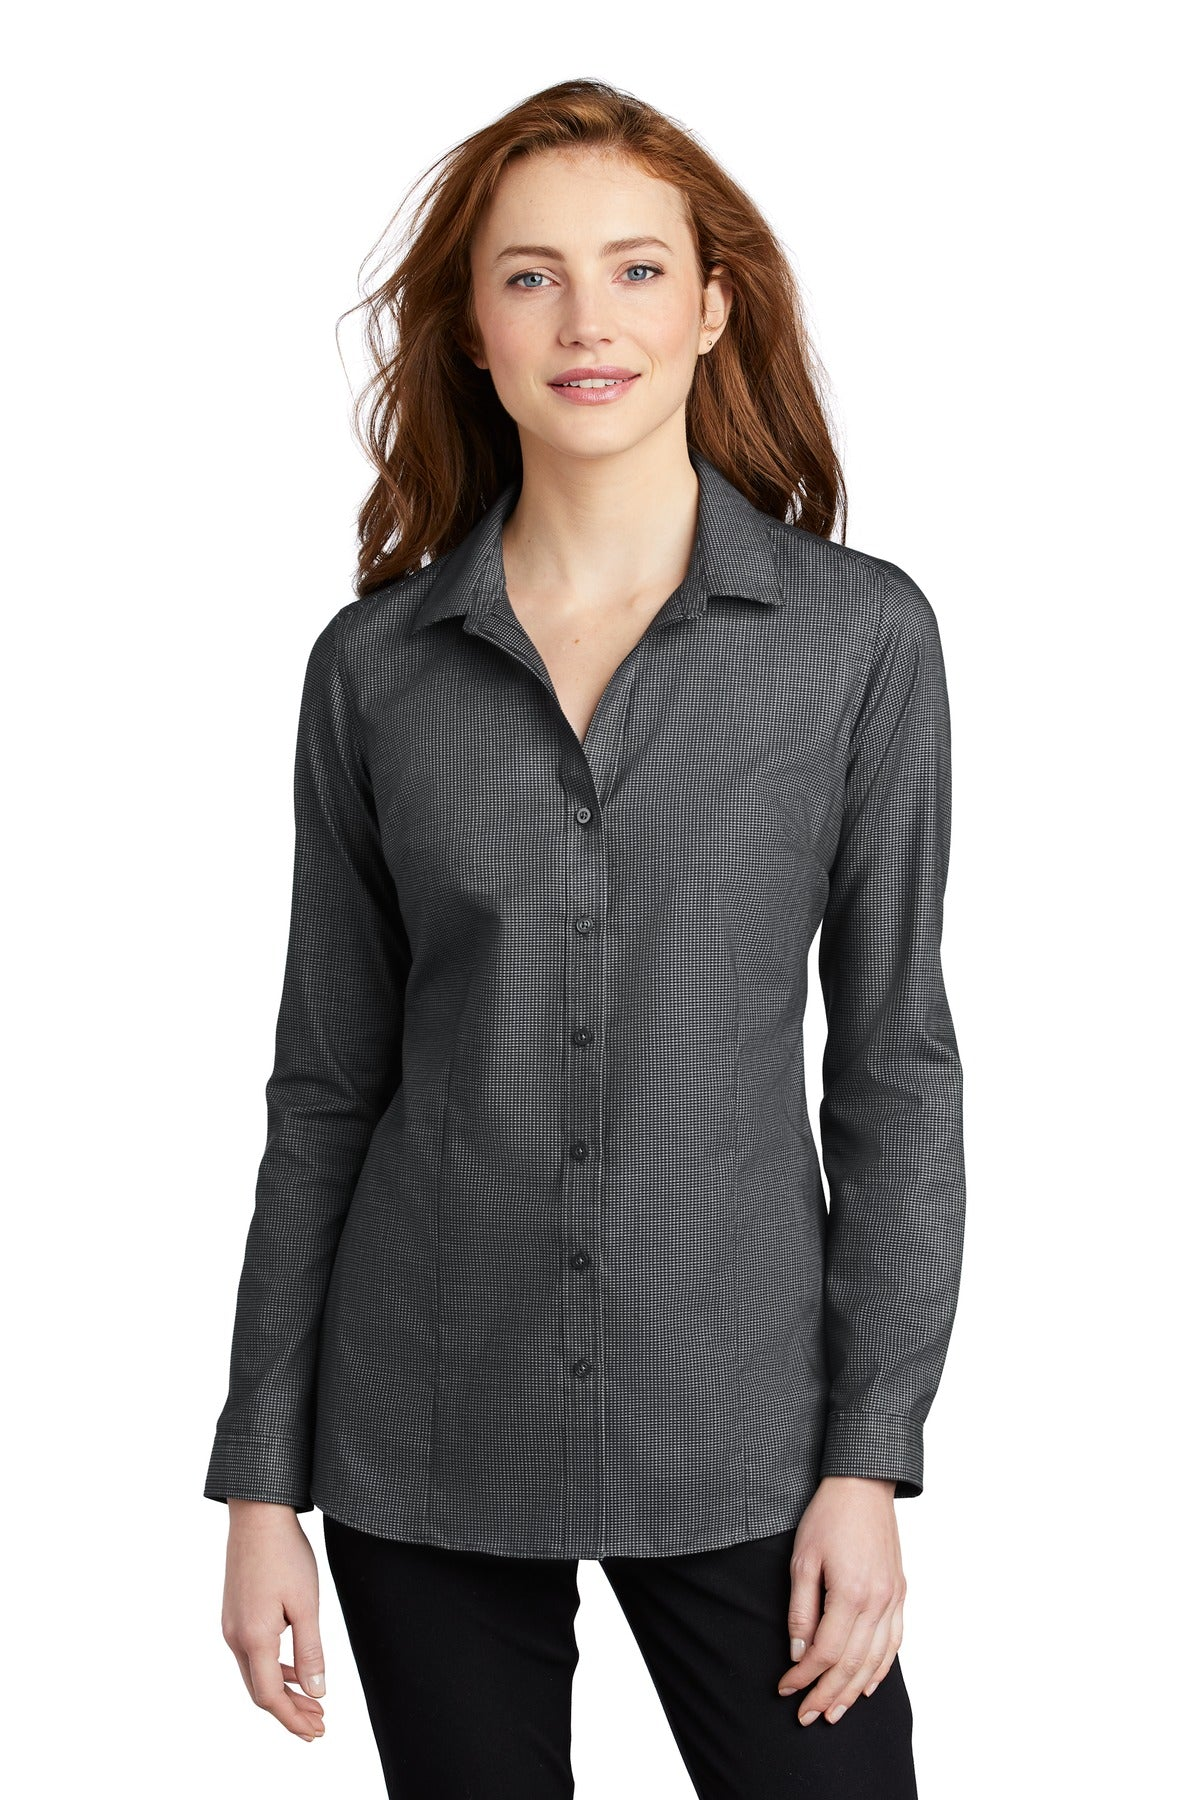 Port Authority LW645 Ladies Pincheck Easy Care Shirt - Black Gray Steel - HIT A Double